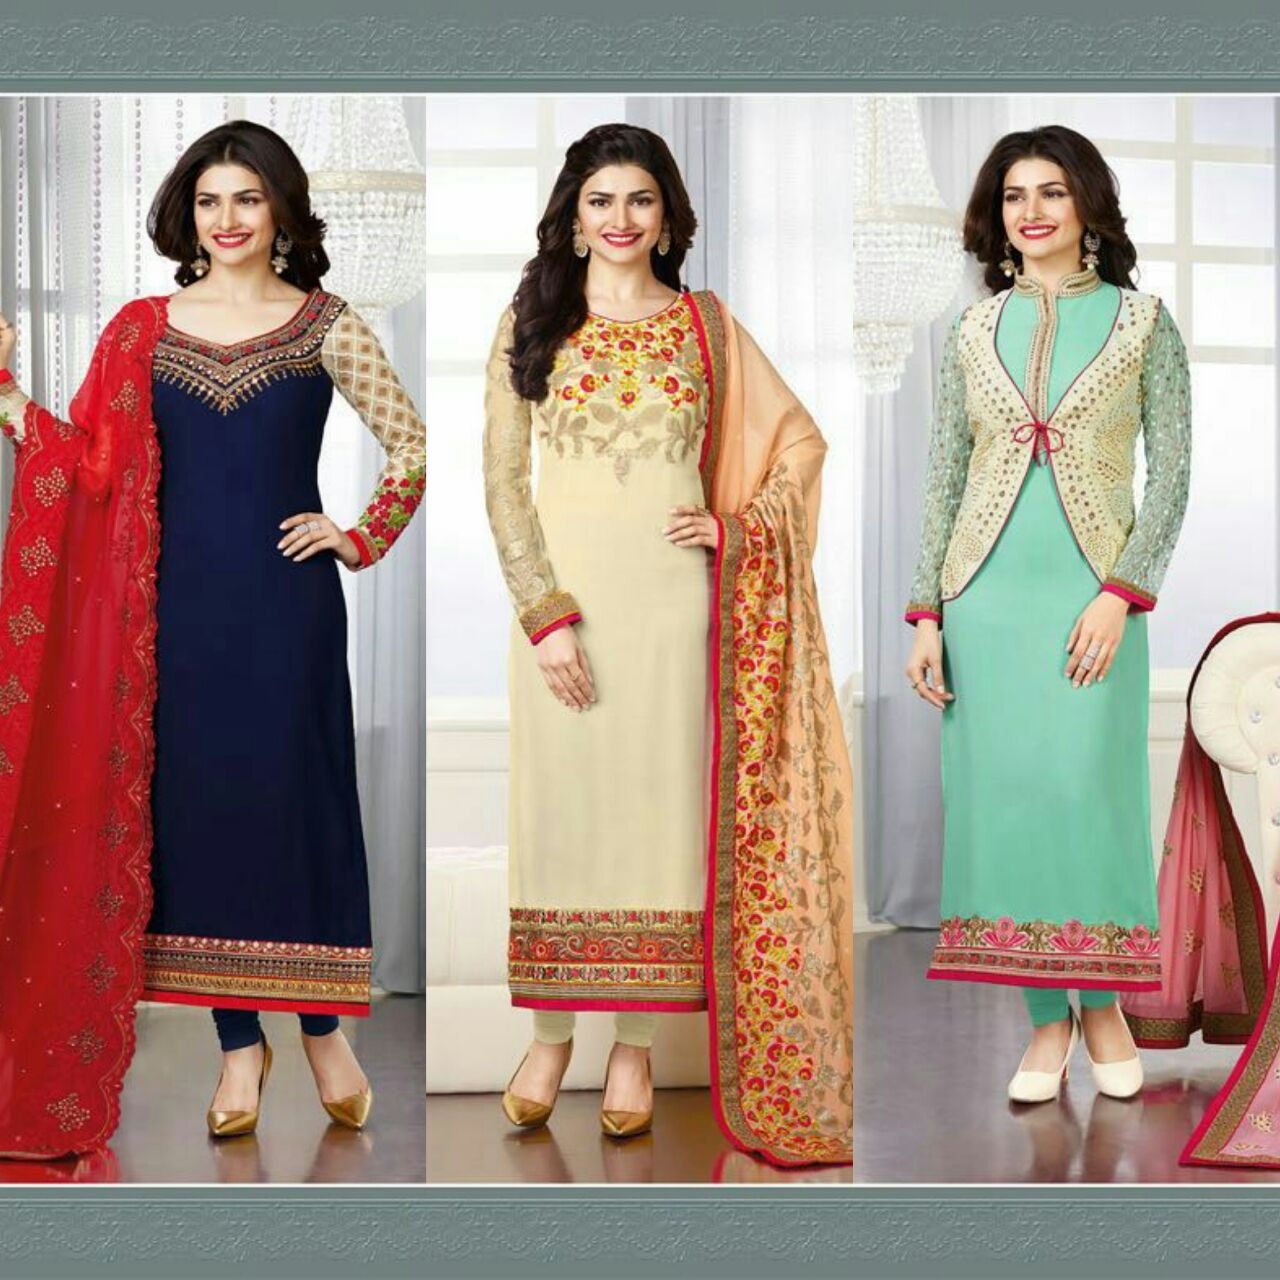 Fashion House is The finest exporters, suppliers, traders, wholesalers and retailers of this impeccable range of Ladies Suits & Dress Materials in Mumbai and Navi Mumbai   For more information contact,  +91 8691895463  +91 22 65656578  +91 9930331767  Shop No 40, Prajapati Cascade, Sector 1, New Panvel, 410206 Navi Mumbai.   For More Information please visit us at   http://www.wholesalemarketmumbai.com/  http://www.fashionhouseindia.in/  http://veneesa.com/